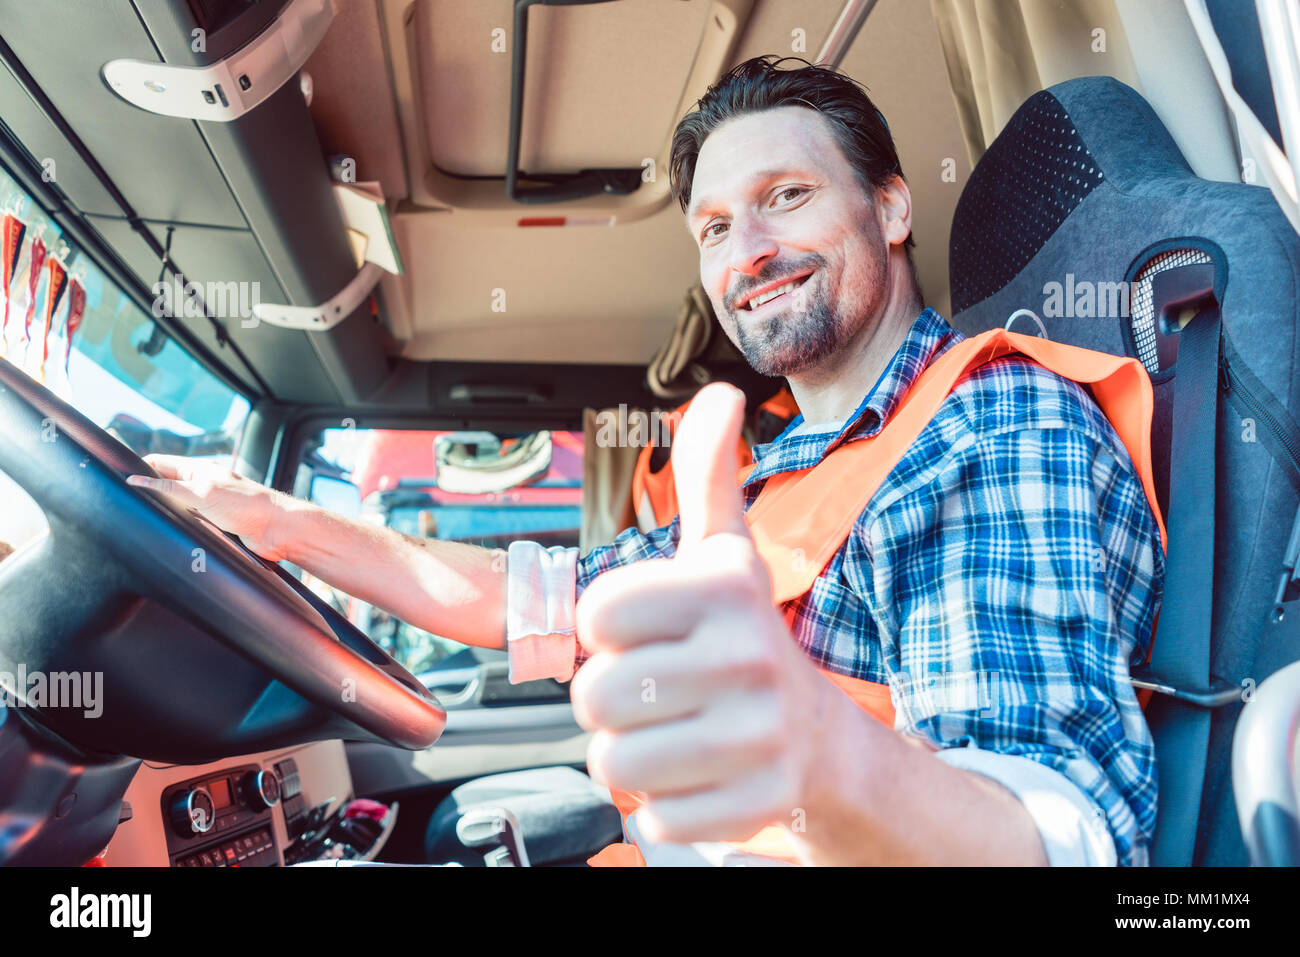 Truck driver sitting in cabin giving thumbs-up - Stock Image